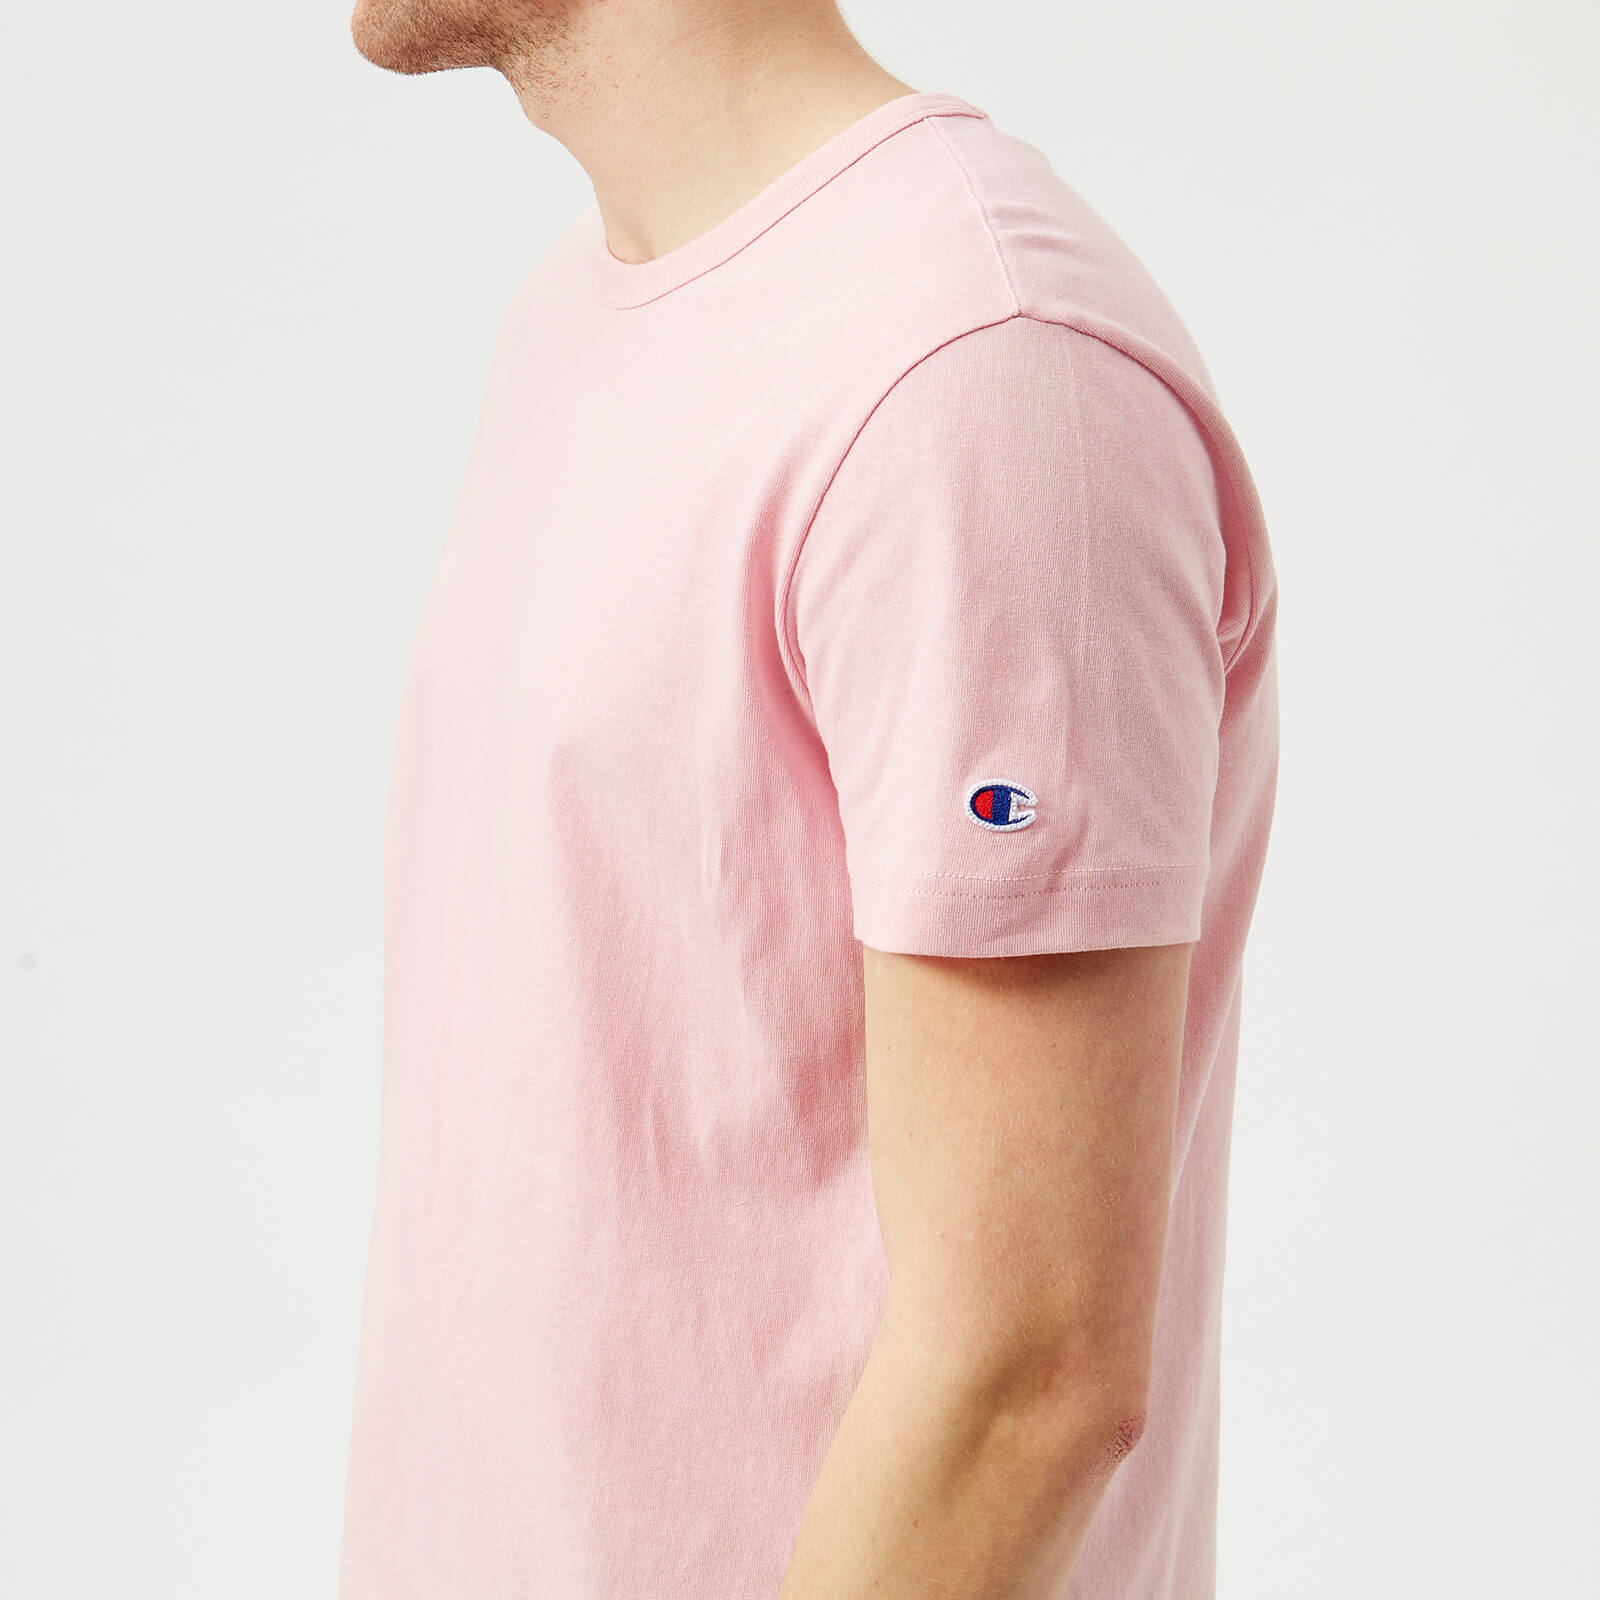 d72f76d5 Champion Men's Short Sleeve Logo T-Shirt - Pink - Free UK Delivery over £50